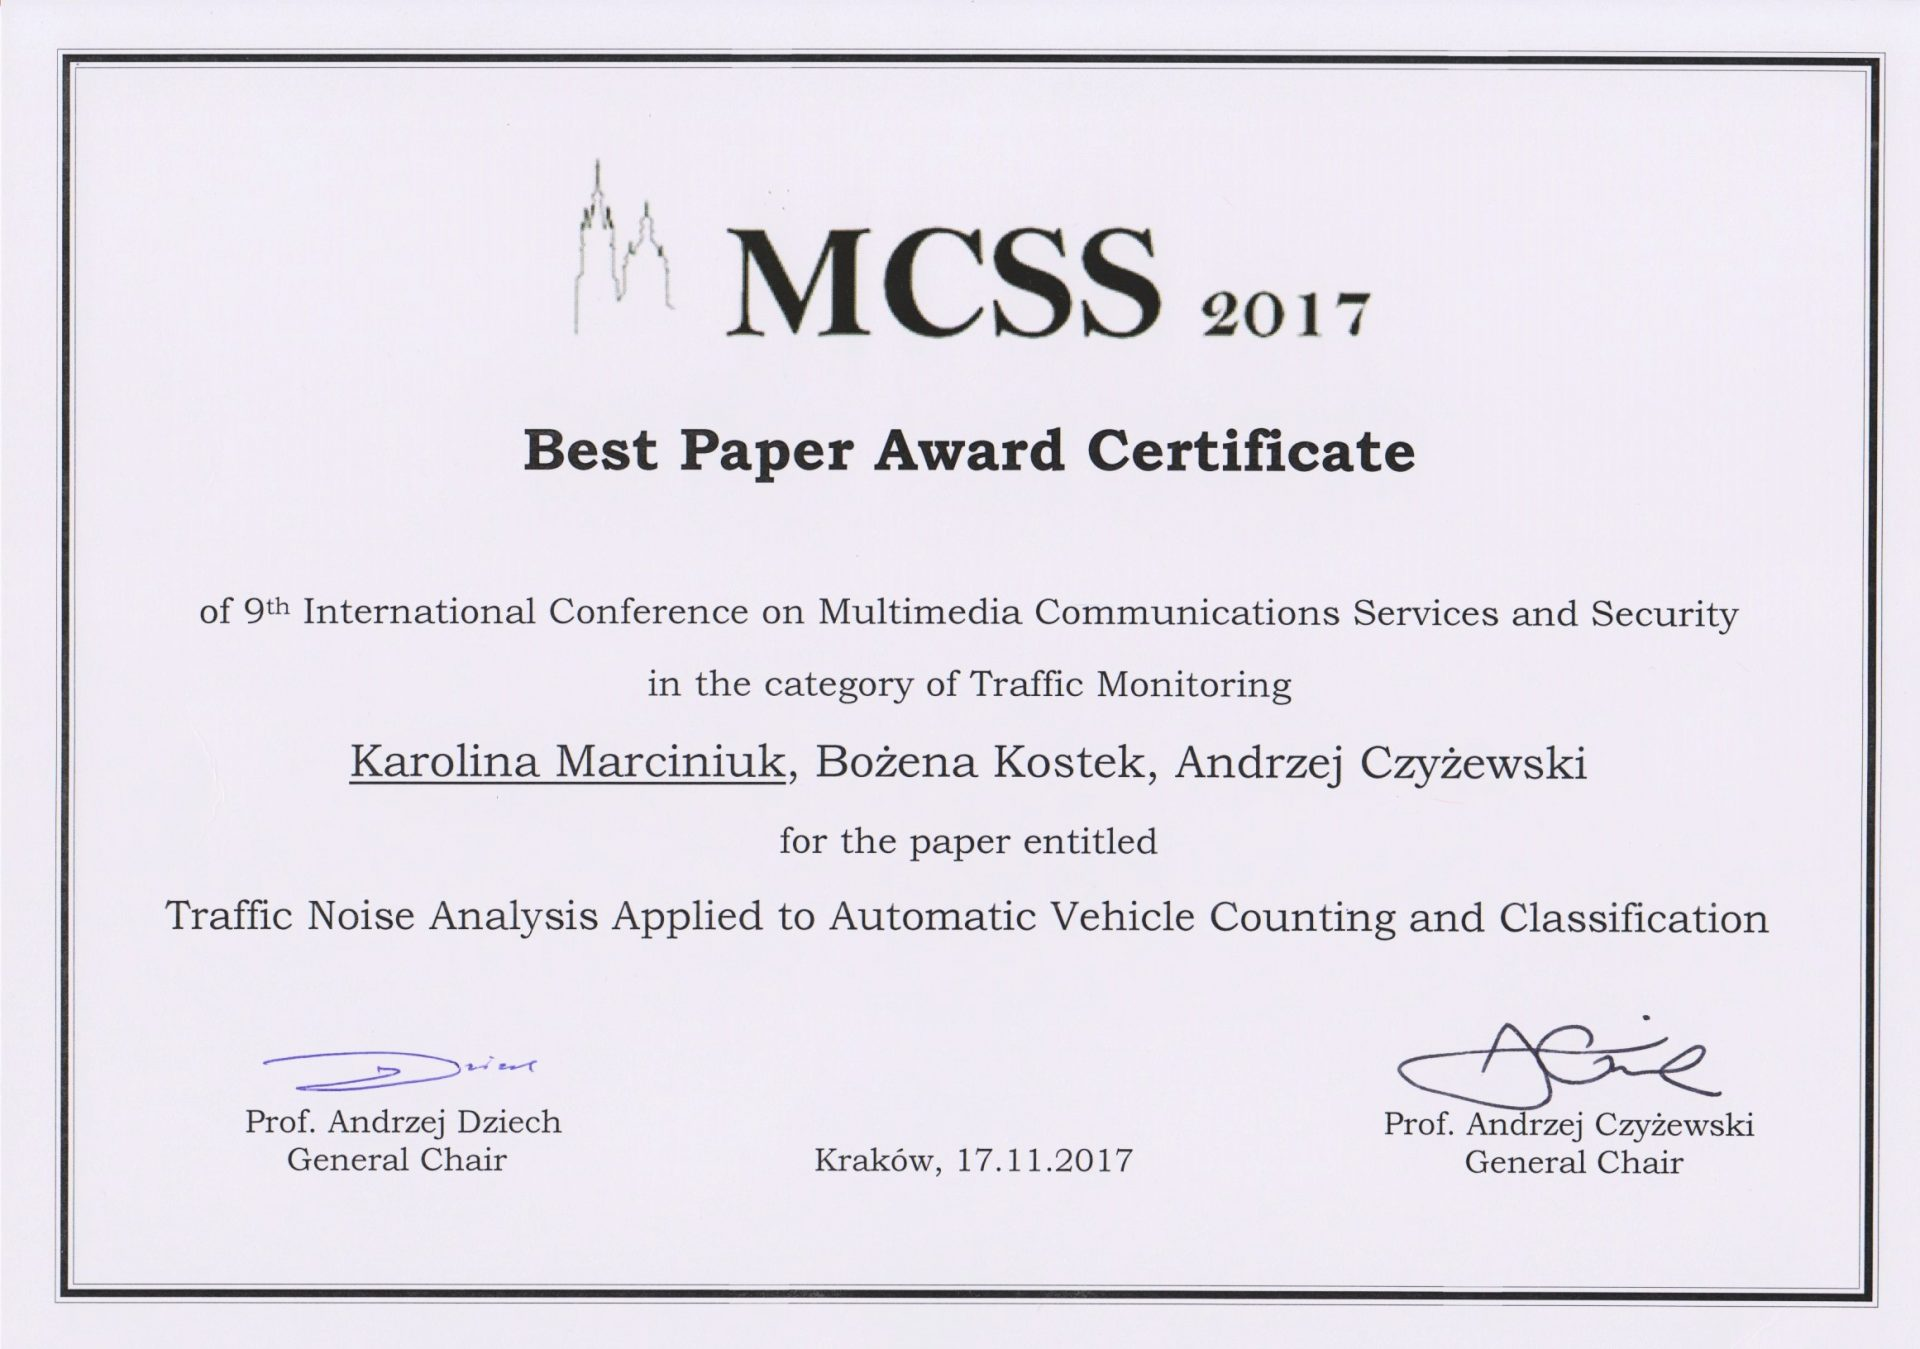 best paper award at the 9th international conference on ieee